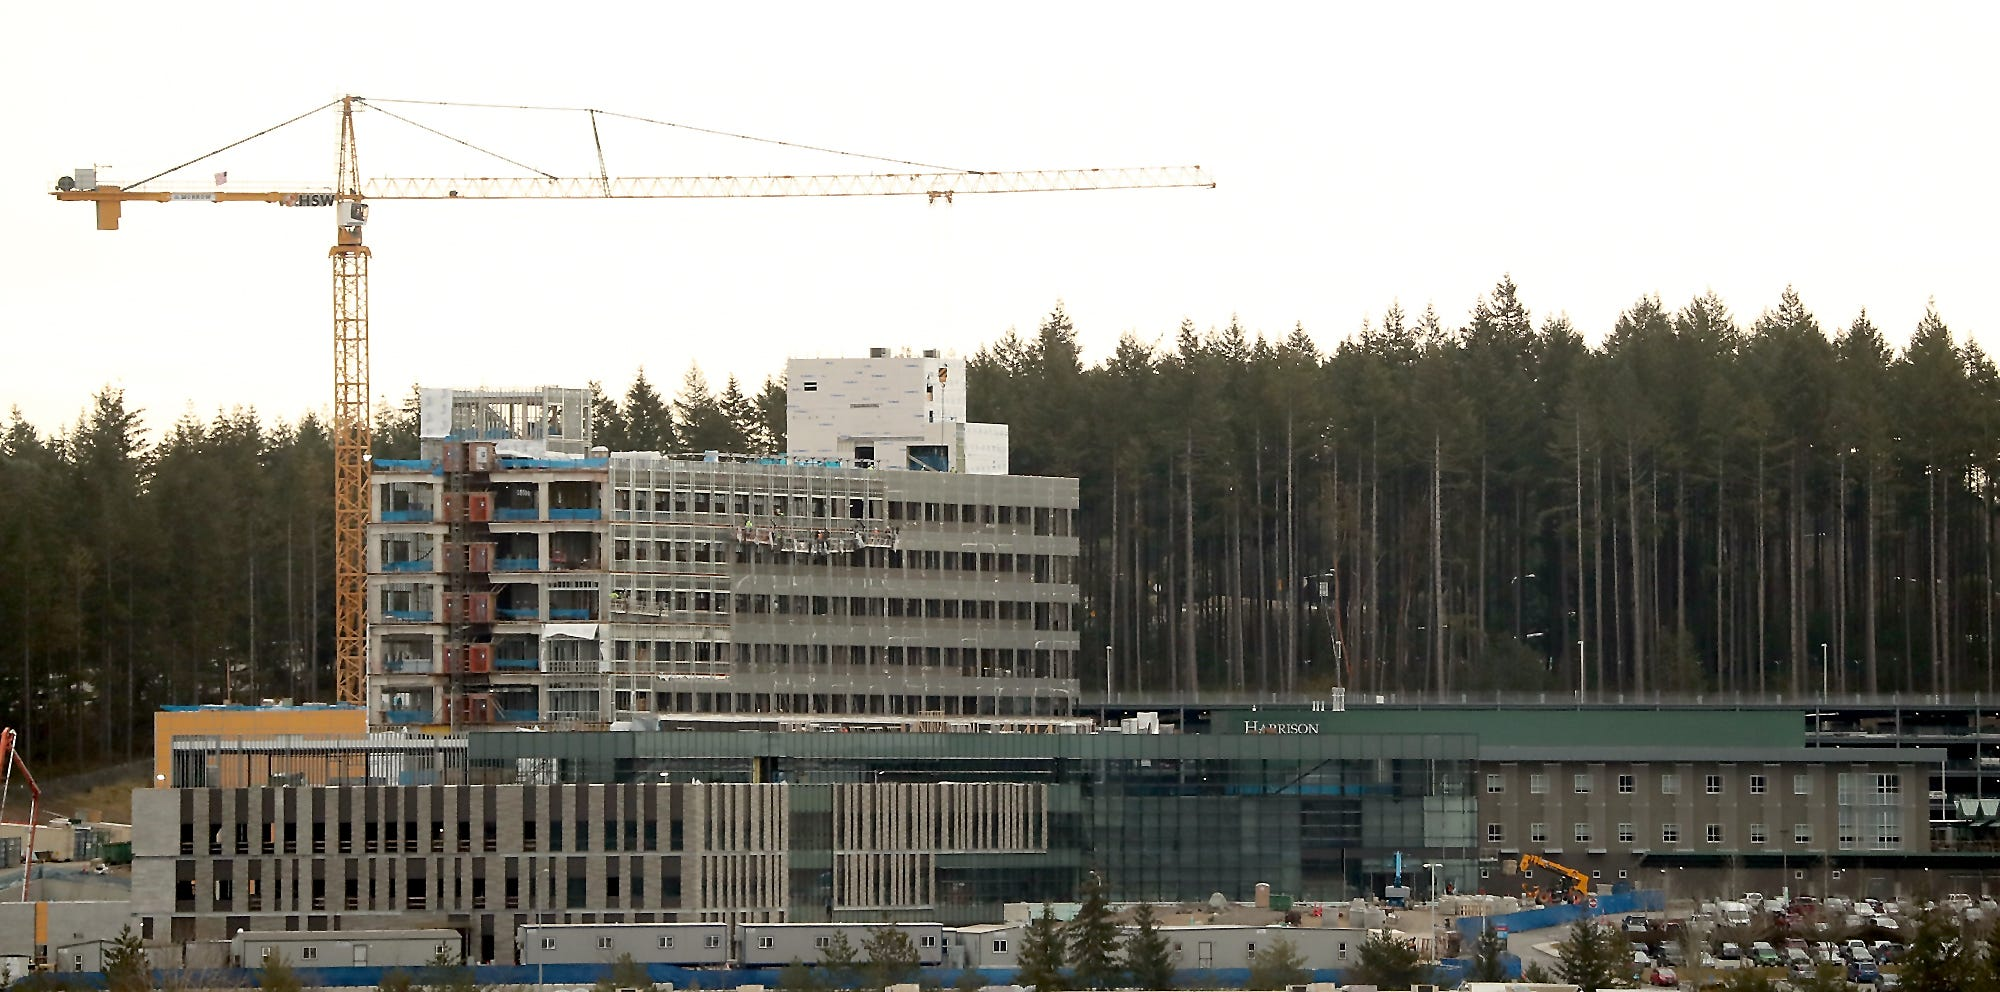 Harrison Medical Center's new hospital in Silverdale is under construction. CHI, the hospital's parent company, announced this month that the hospital will open in late 2020.